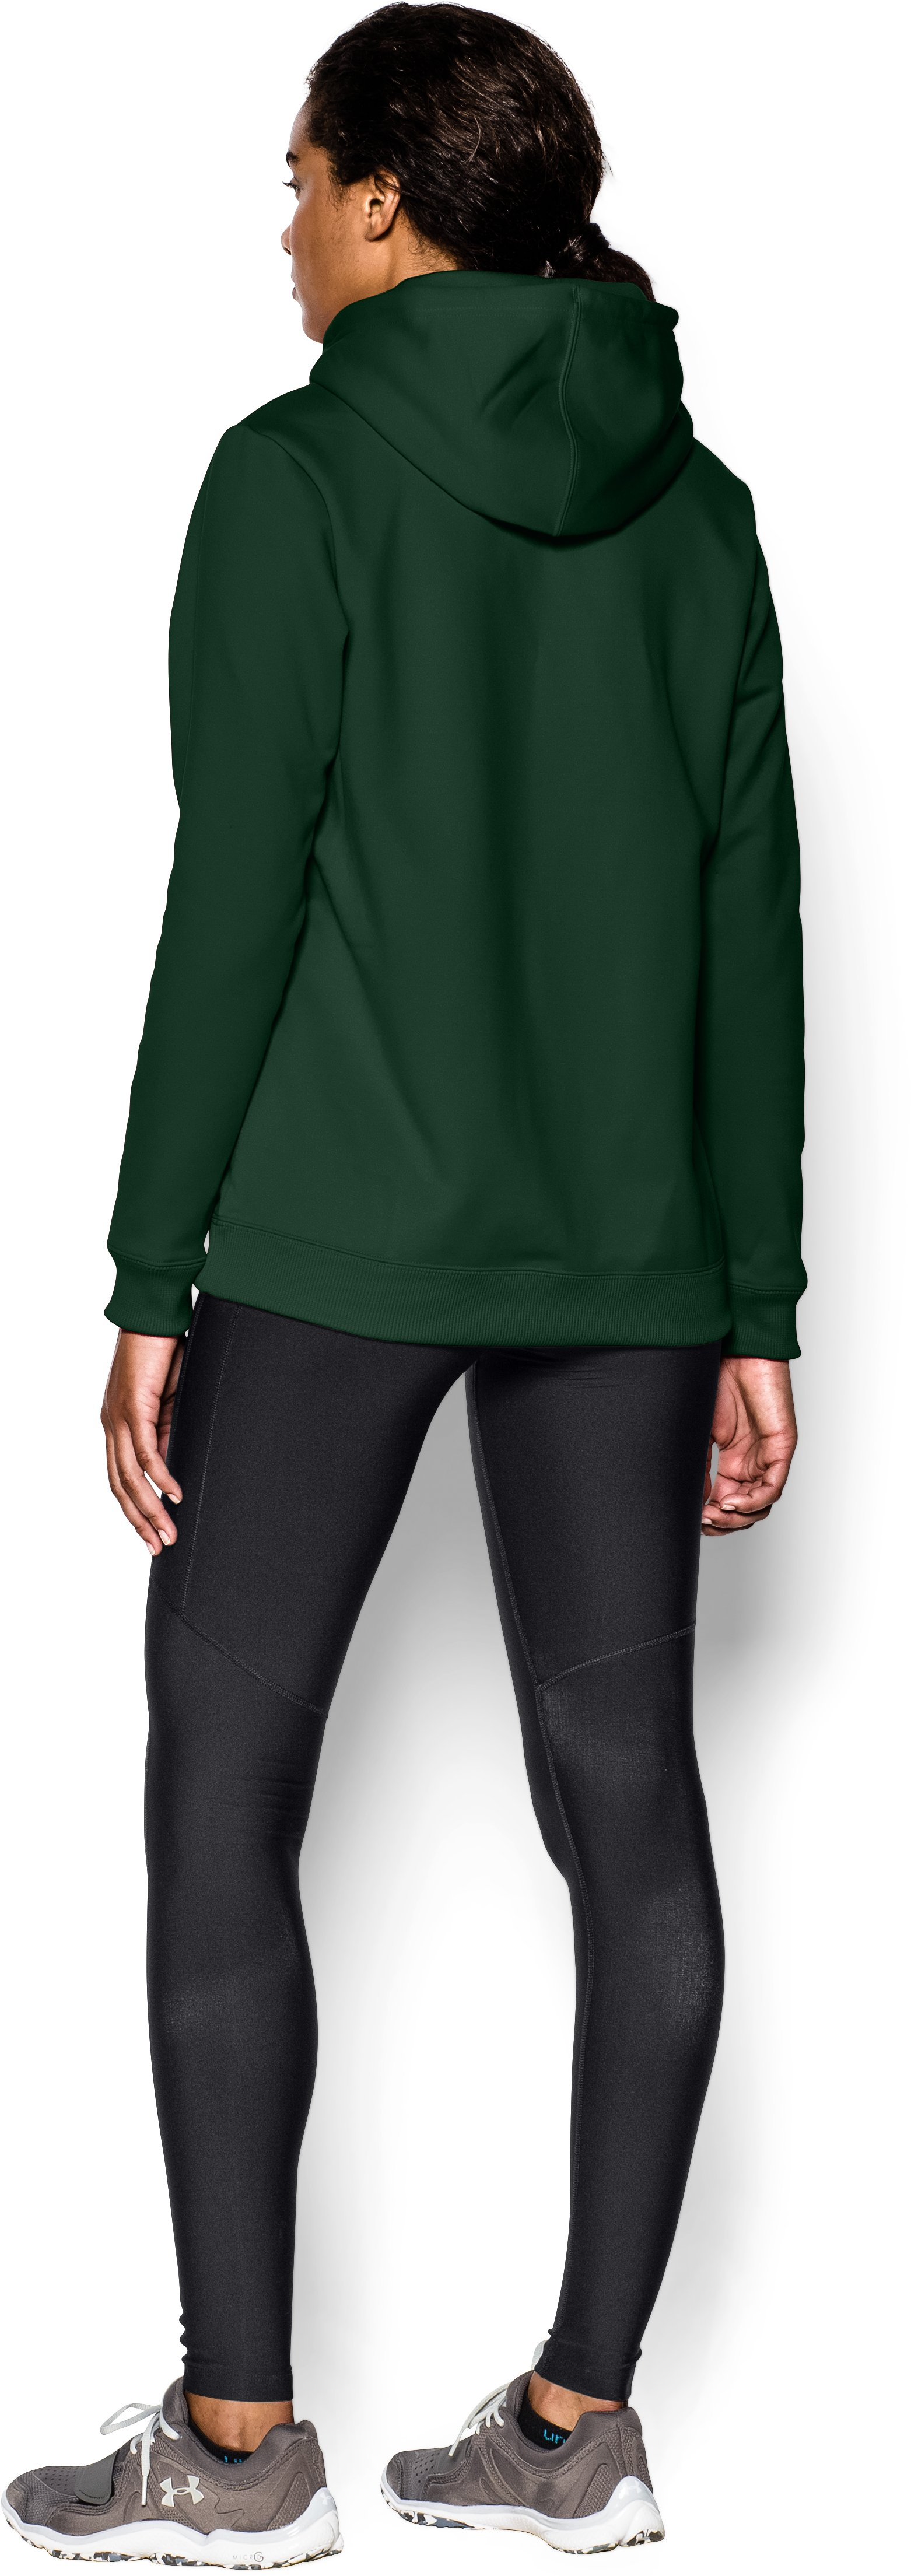 Women's Armour® Fleece Team Hoodie, Forest Green, Back